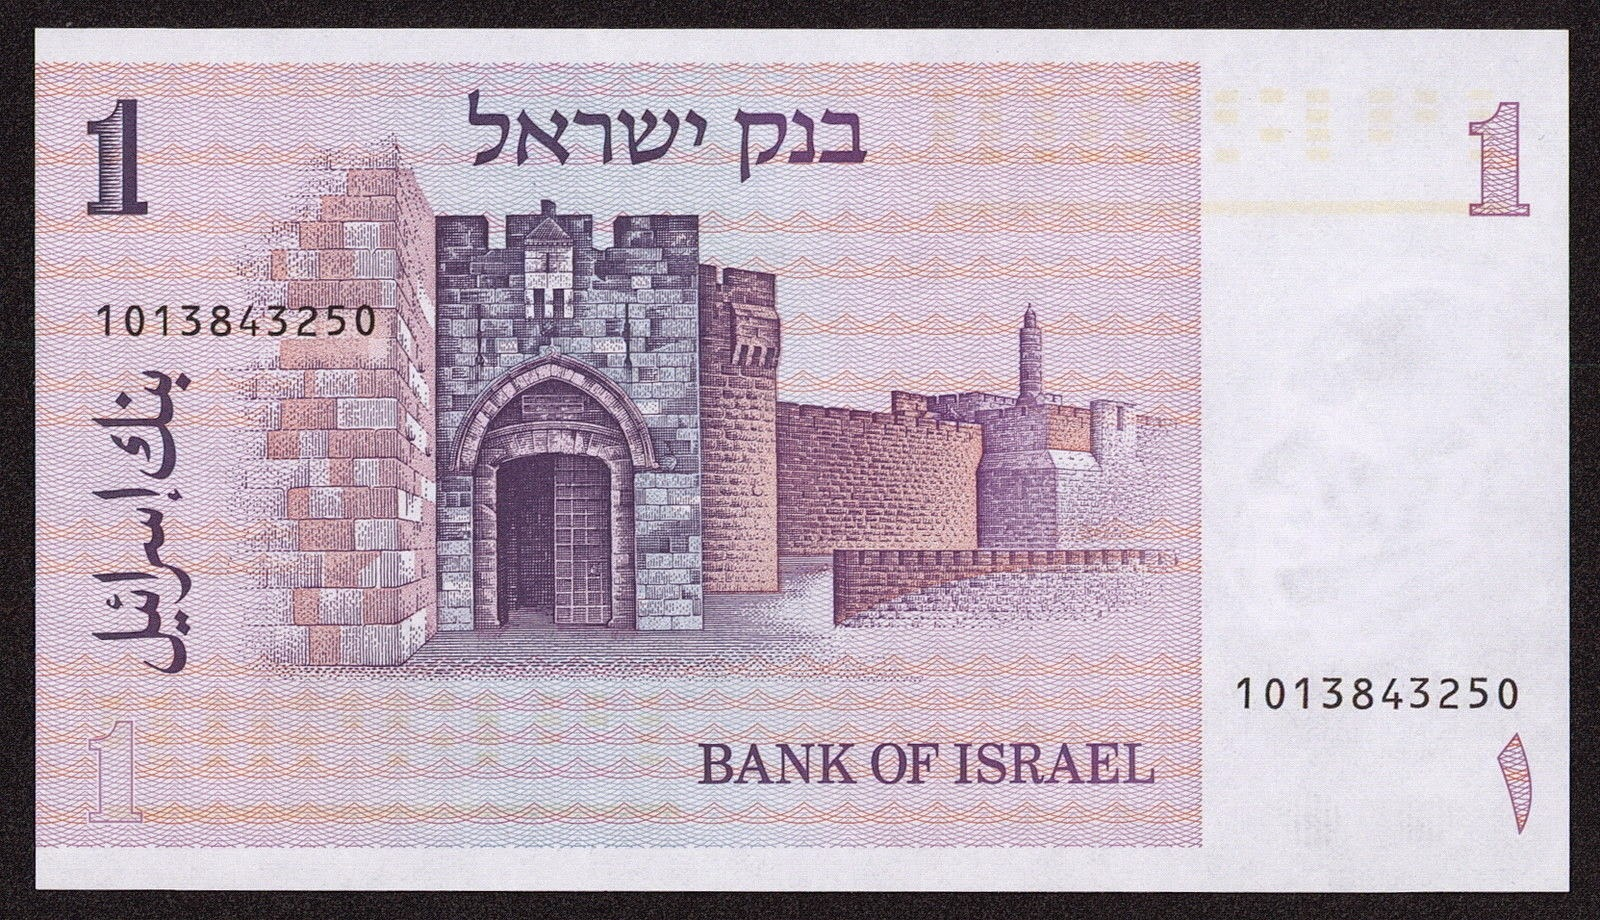 Israeli currency money 1 Sheqel banknote 1978 Jaffa Gate in the Old City of Jerusalem